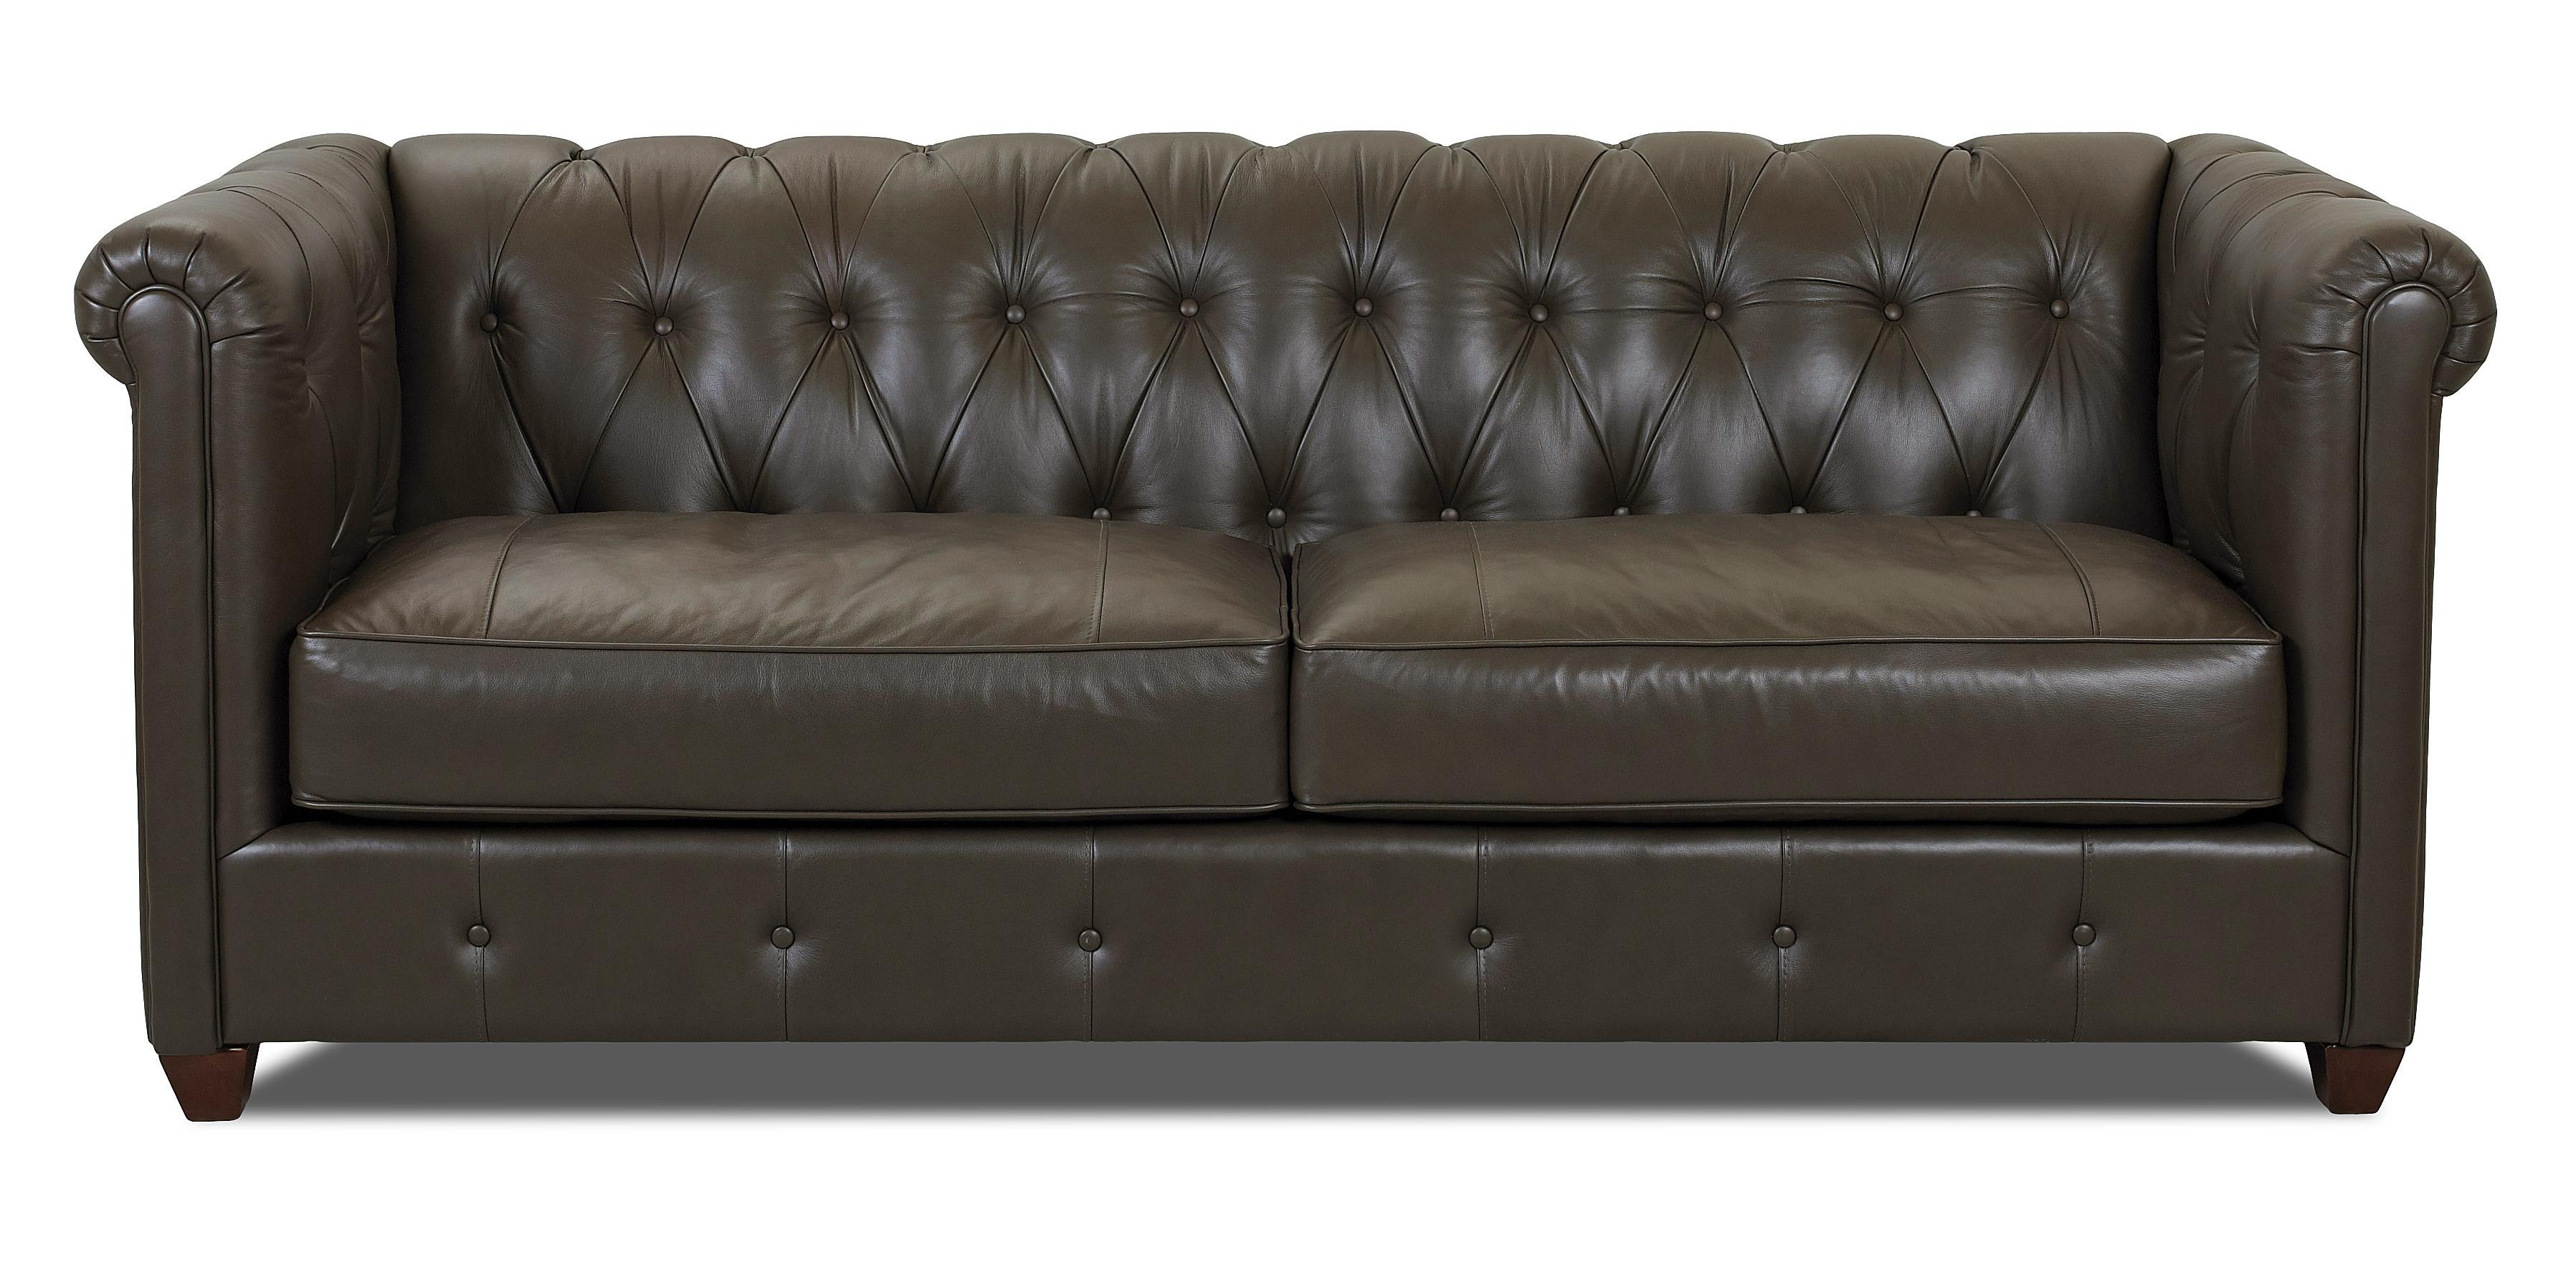 Klaussner Beech Mountain Traditional Chesterfield Sofa with Rolled Arms and Tufting Value City